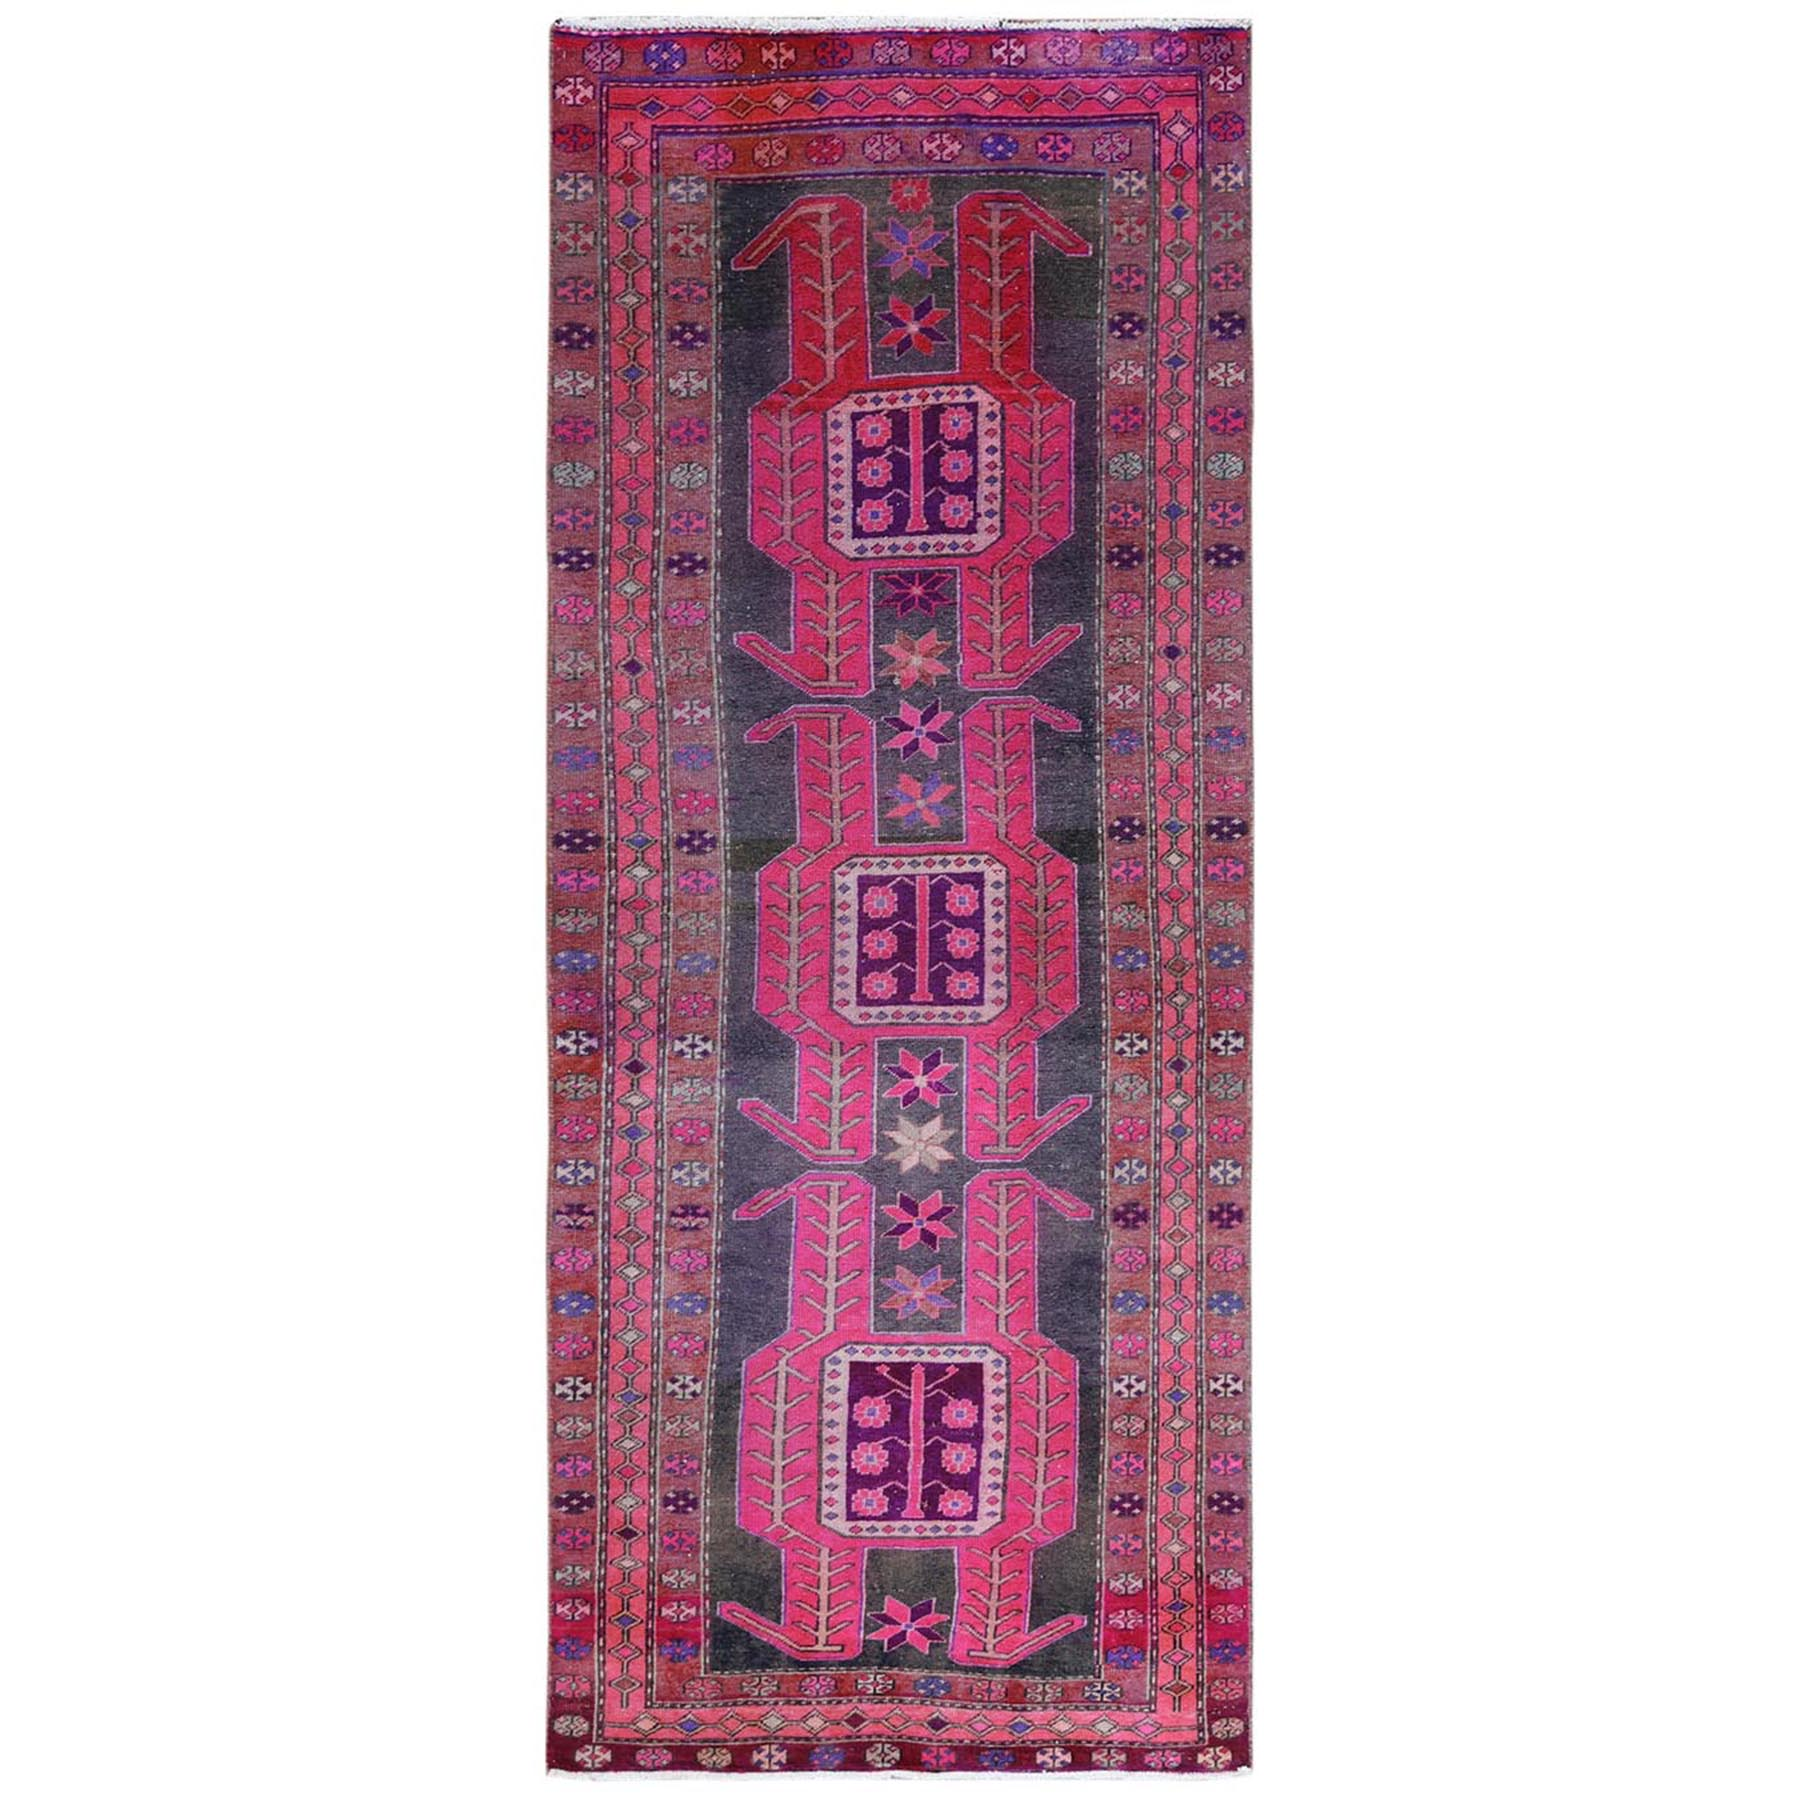 Fetneh Collection And Vintage Overdyed Collection Hand Knotted Pink Rug No: 1122060